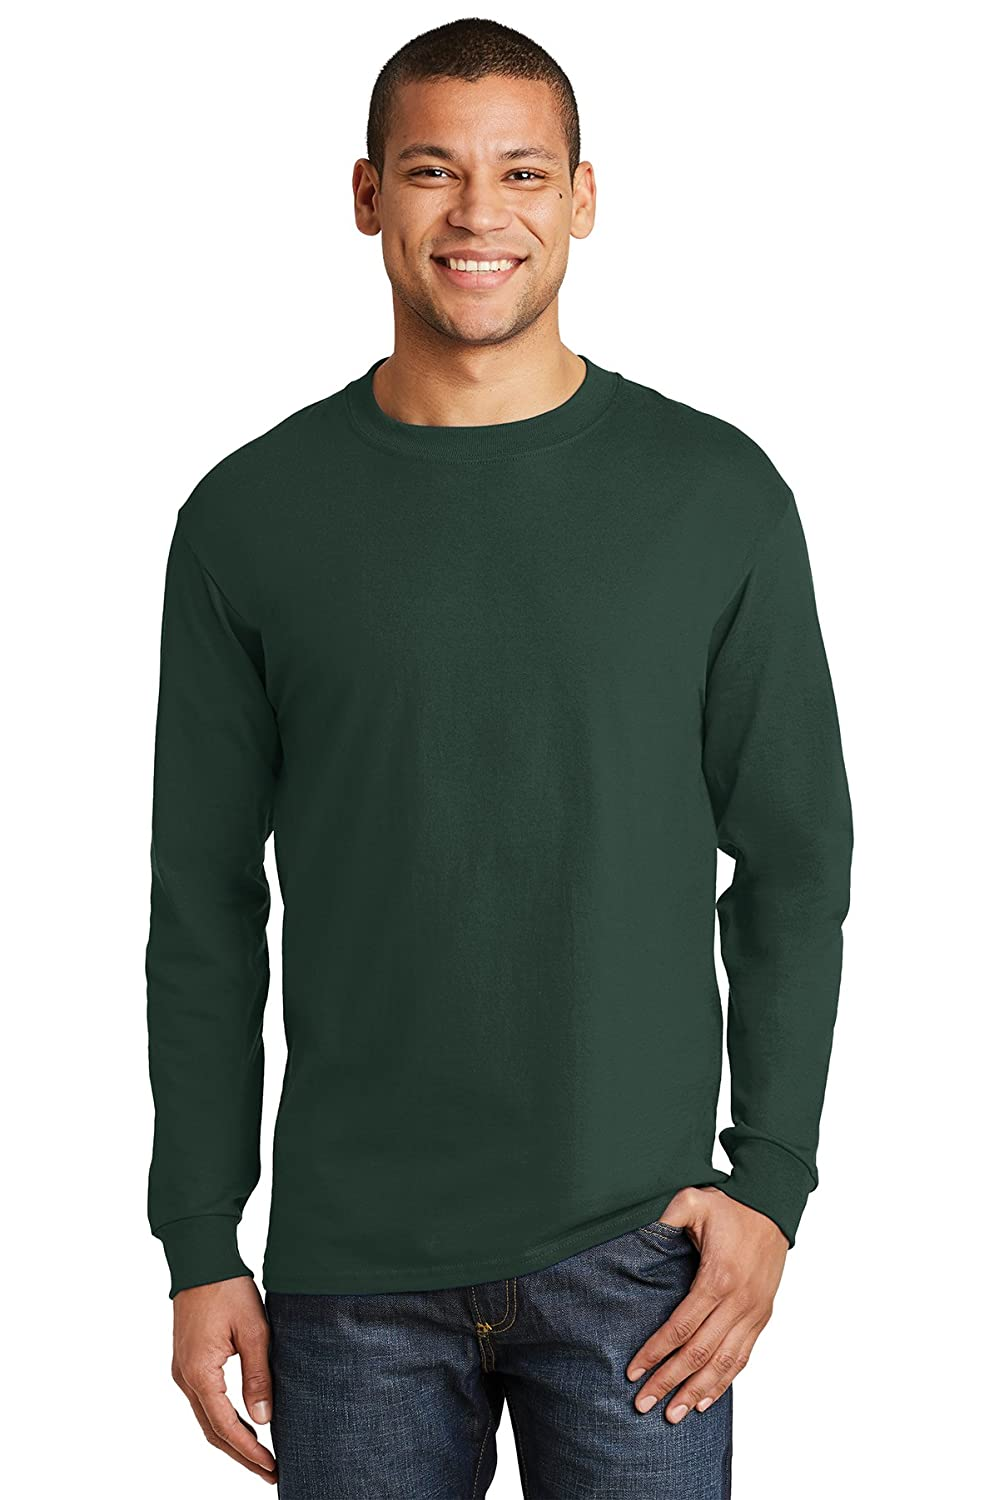 Deep Forest Logotastic UnisexAdult Rmk Hanes BeefyT  100% Cotton Long Sleeve TShirt  Ash  (CASE Pack of 36)